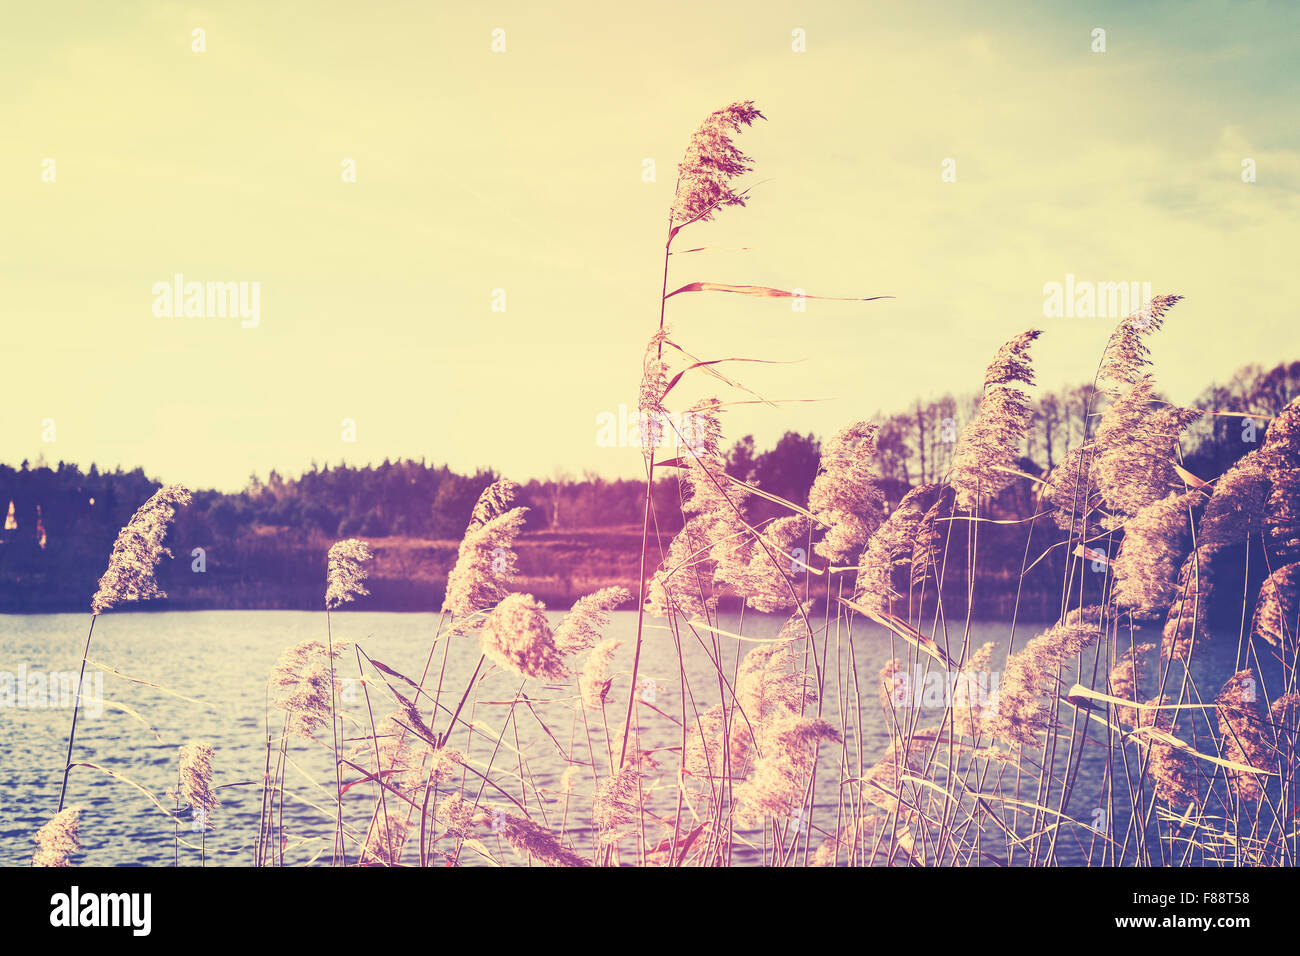 Vintage toned reeds by a lake, nature background with shallow depth of field. - Stock Image